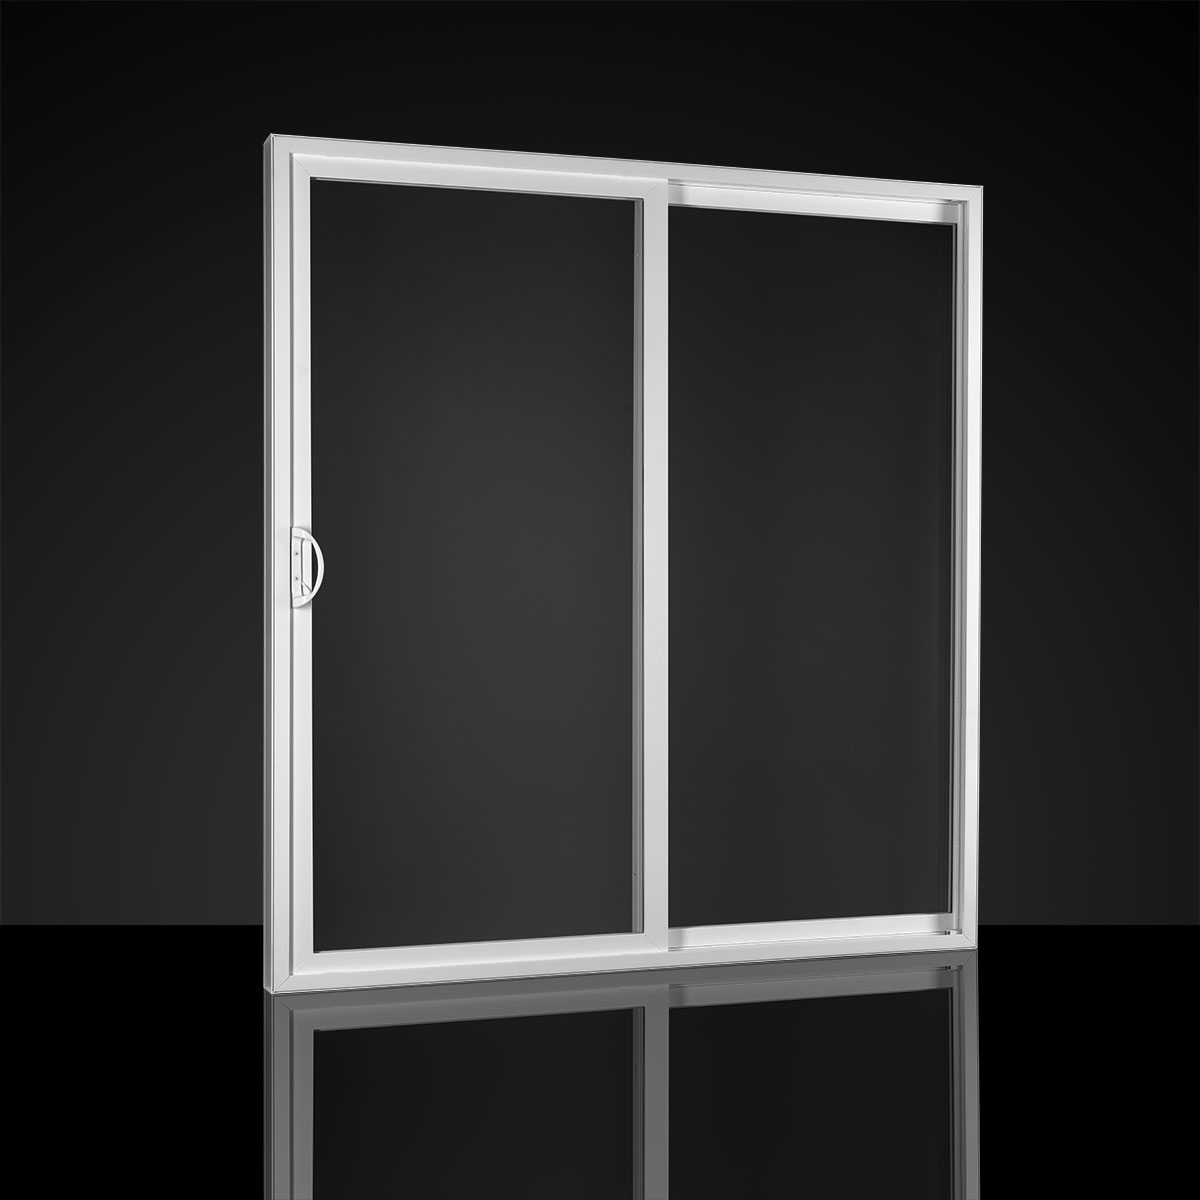 Sliding Doors Of Glass: Product Information